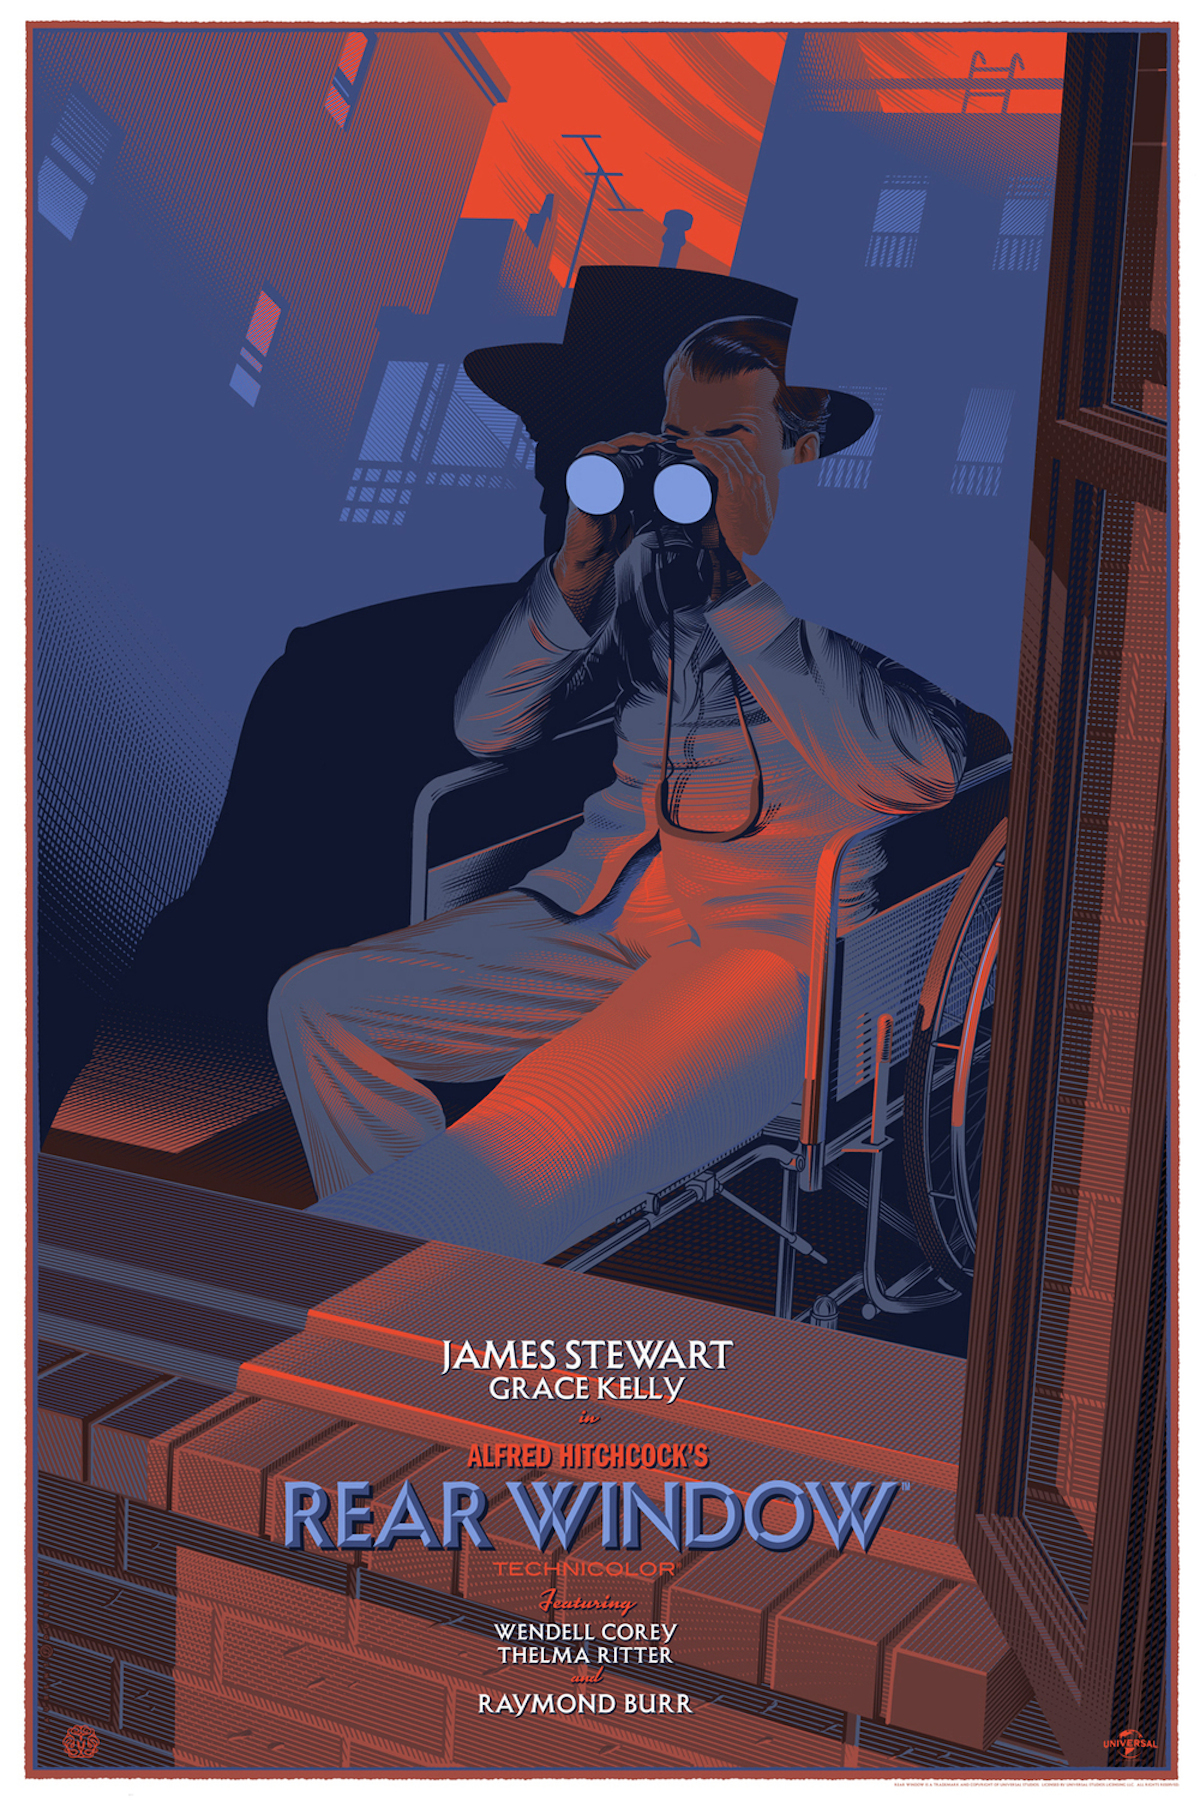 Rear Window Retro-Futuristic World of Laurent Durieux